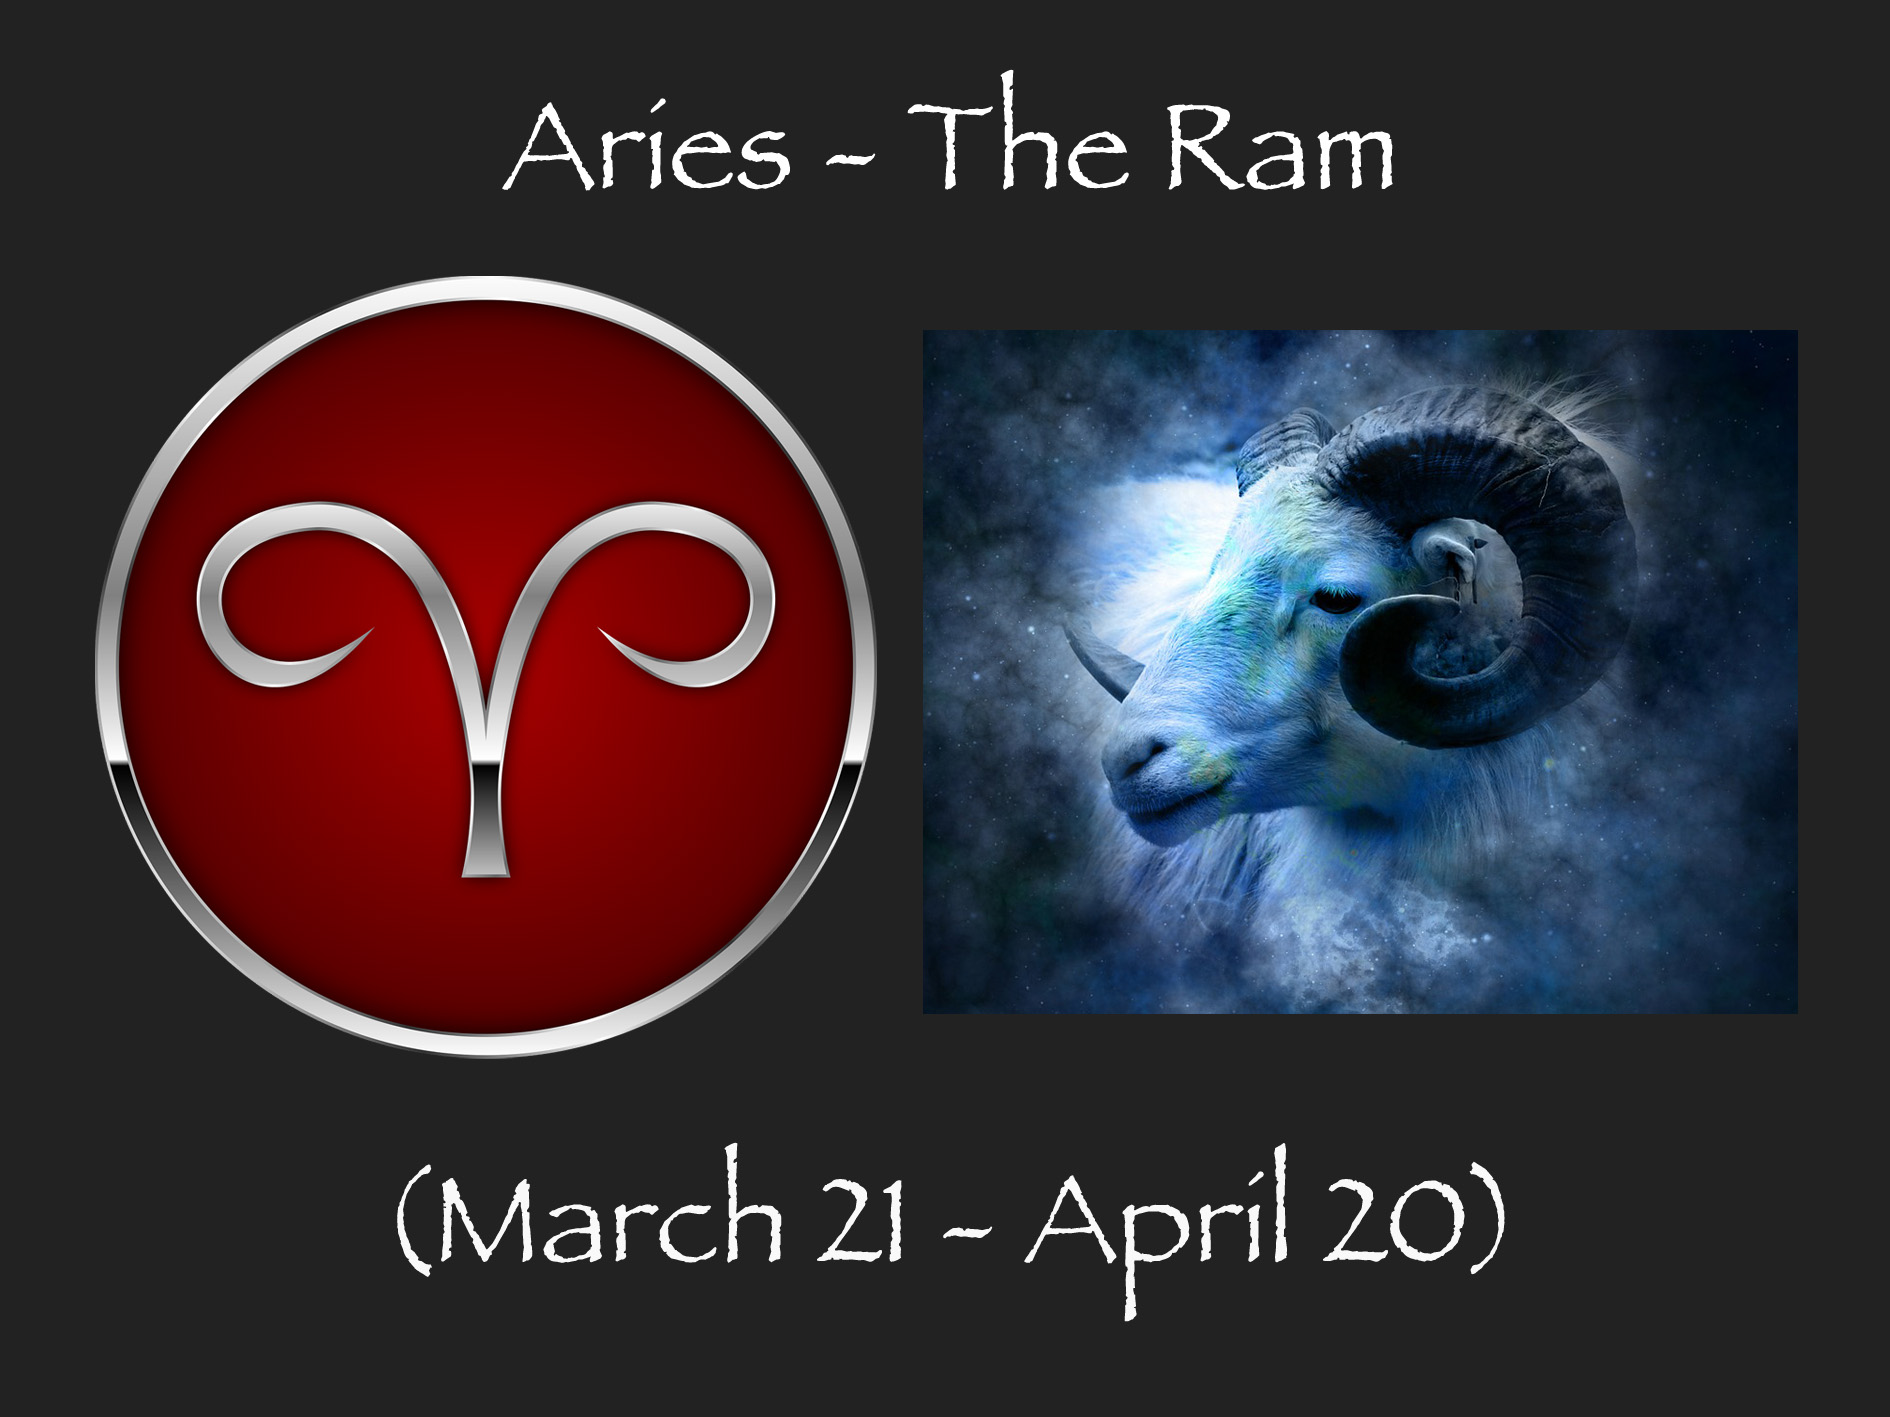 Aries - astrological sign